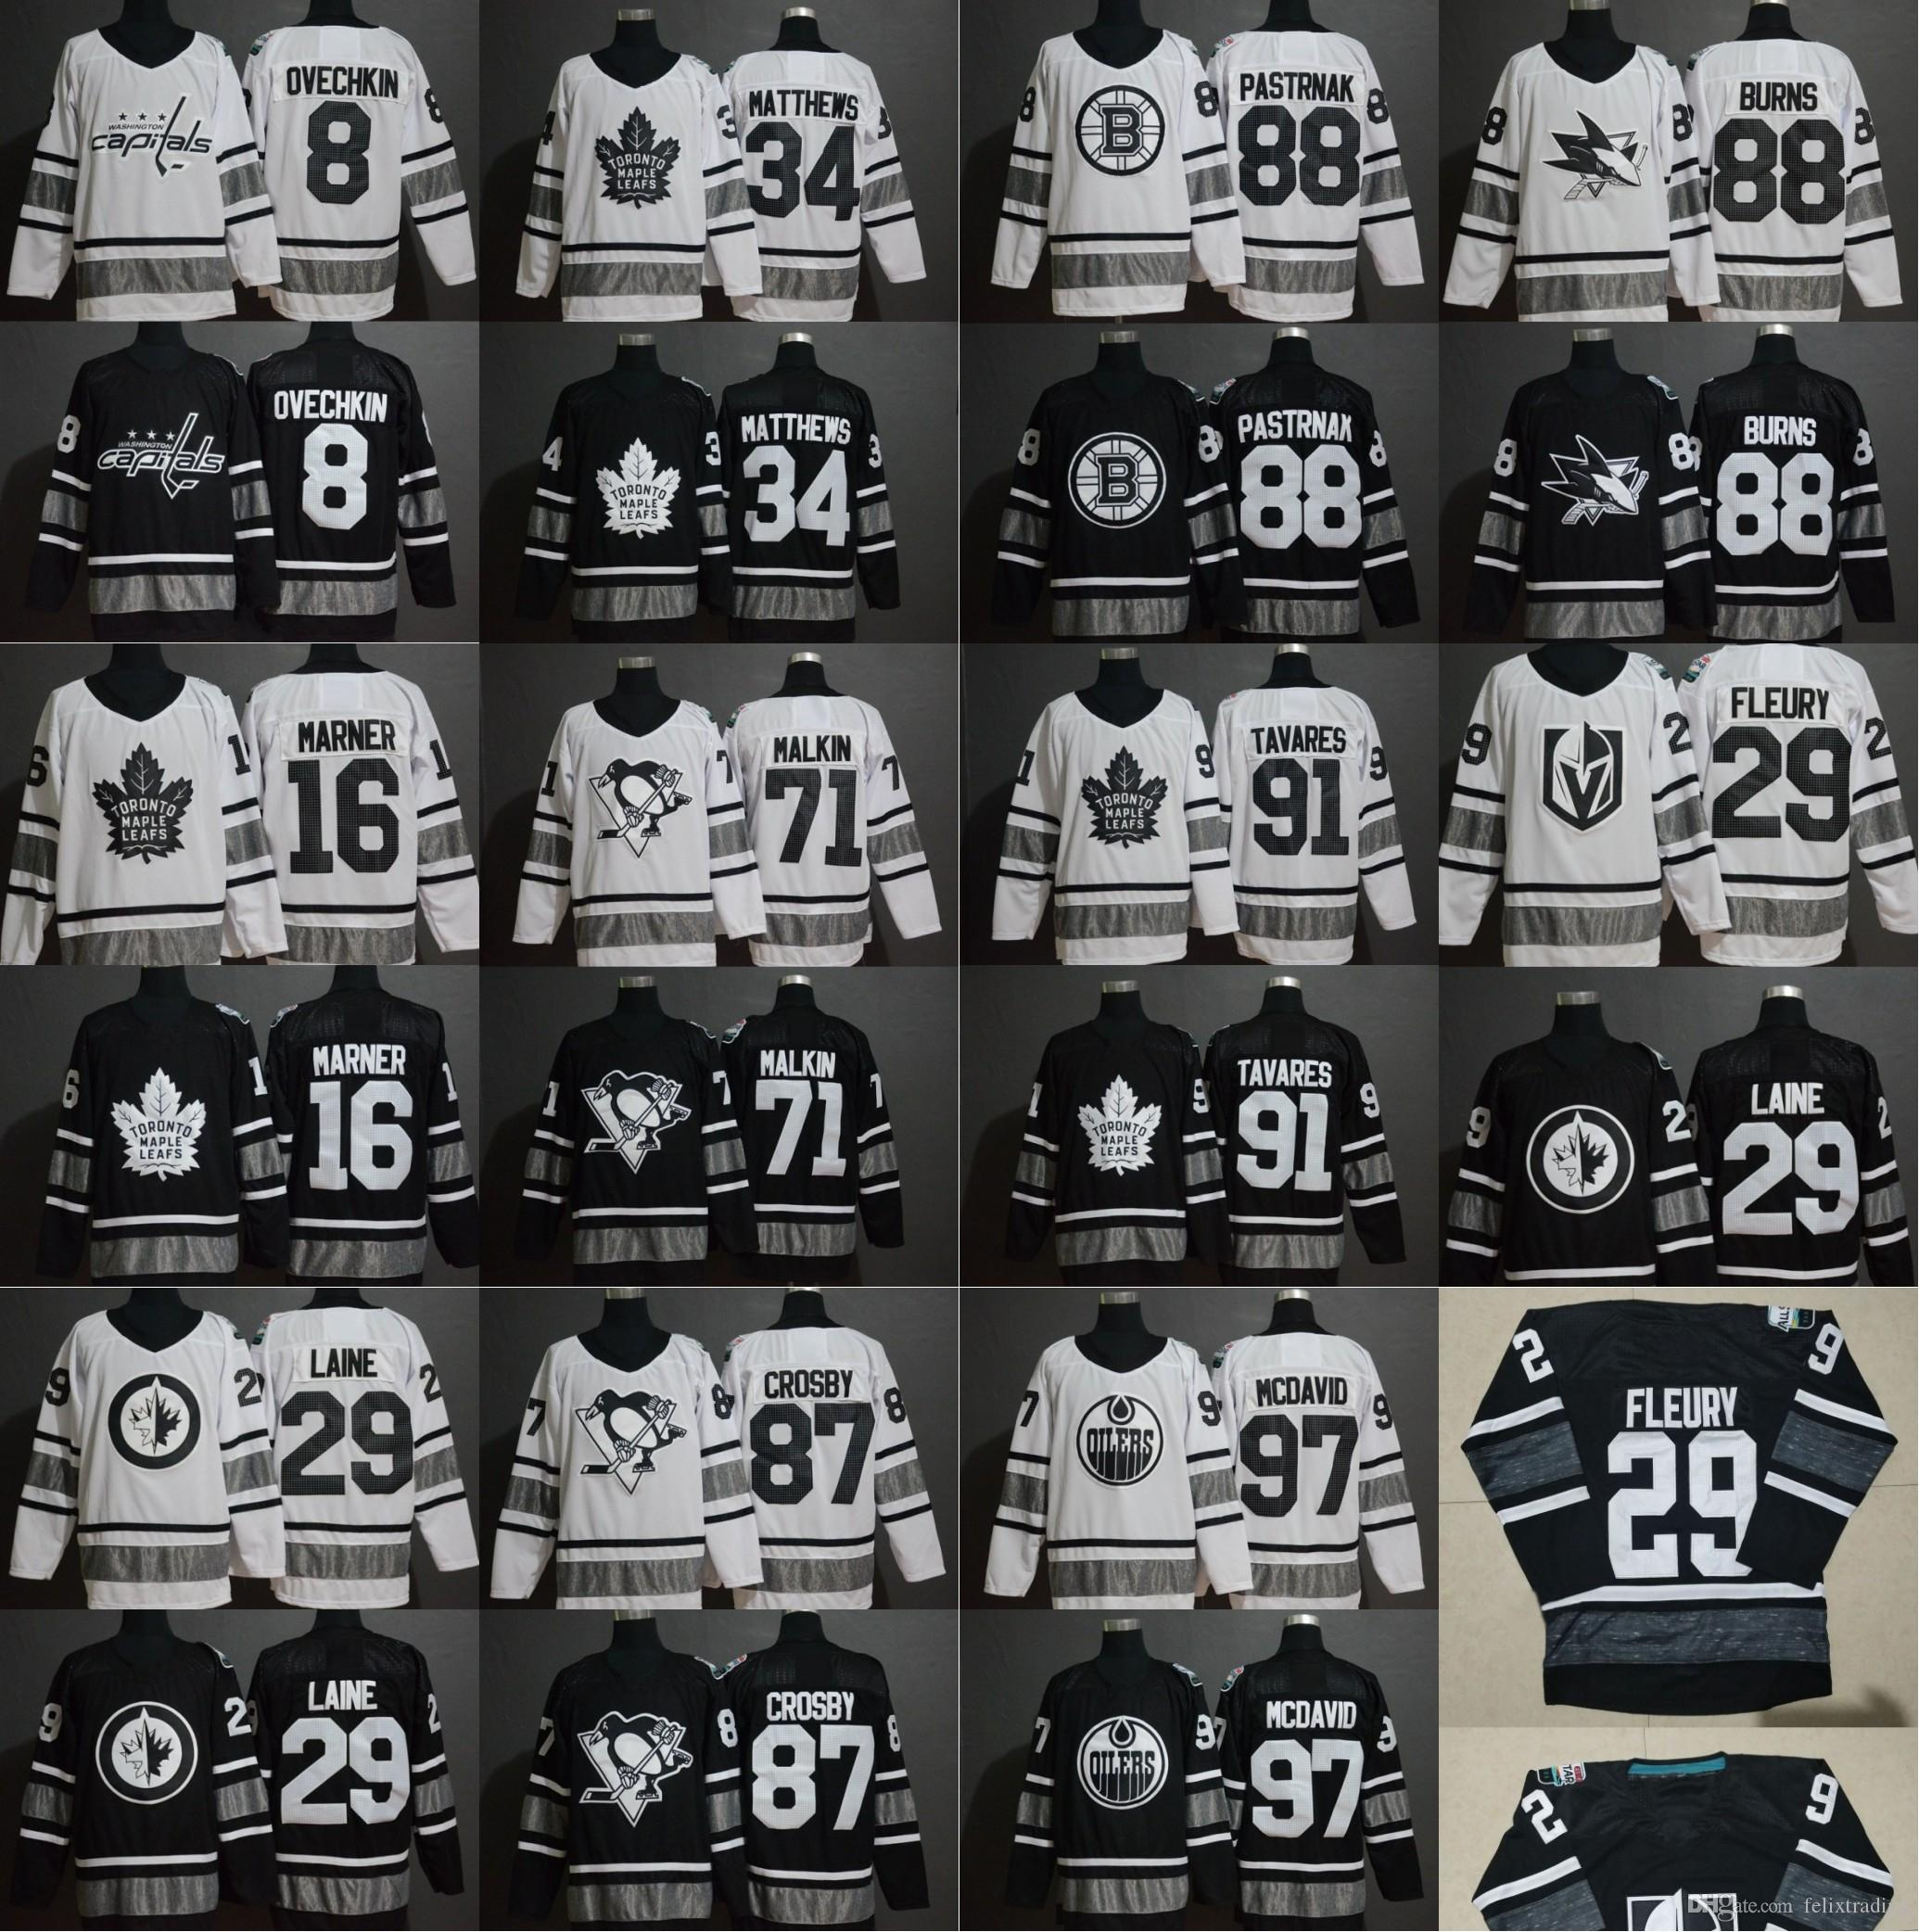 2019 All Star 88 Brent Burns 87 Sidney Crosby 97 McDavid Marc-Andre Fleury  David Pastrnak Tavares 71 Evgeni Malkin 16 Mitch Marner Jersey 2019 All Star  ... 63f952b39